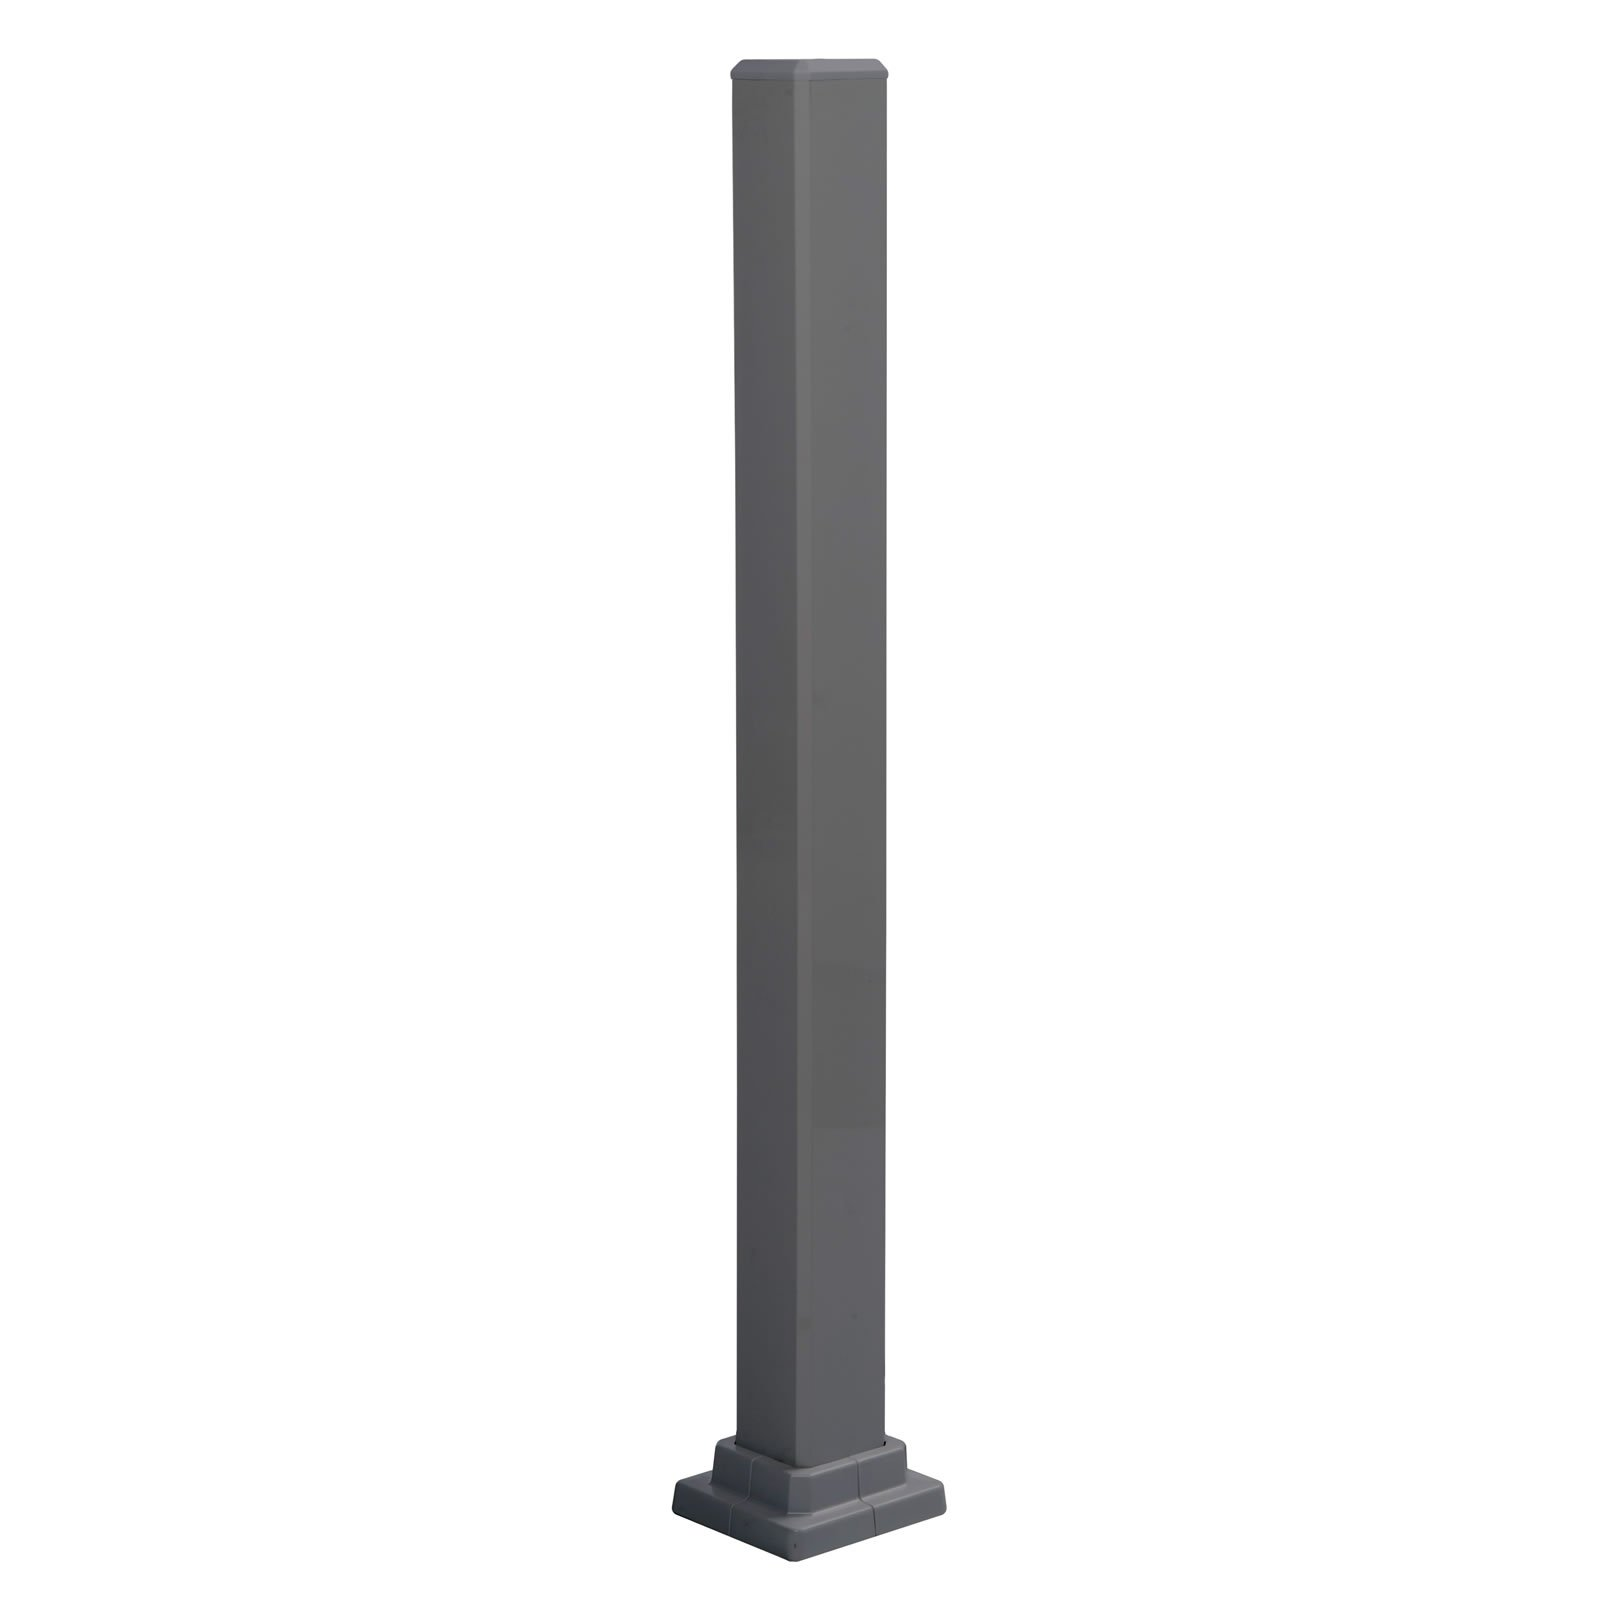 Mounting Post for PromenAid Handrail System, Aluminum, Charcoal Grey, 3''X3'', 5'' square flange, 37'' height